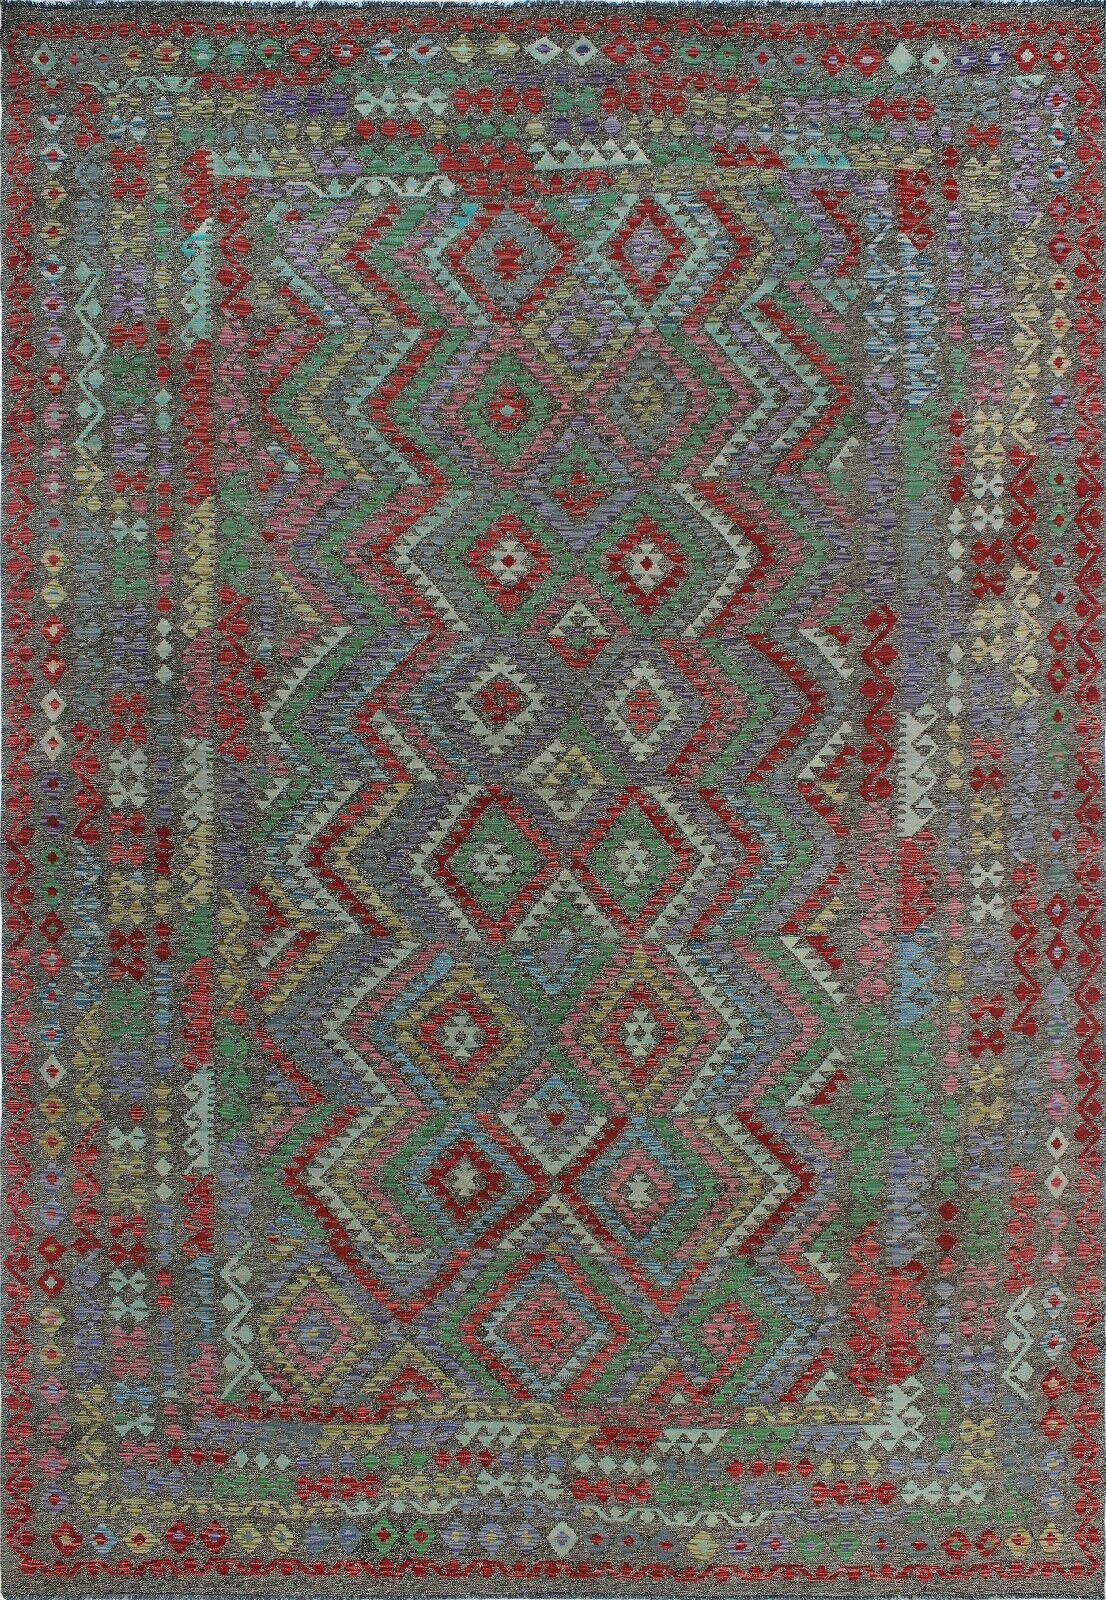 One-of-a-Kind Renita Kilim Hand-woven Wool Blue/Red Area Rug